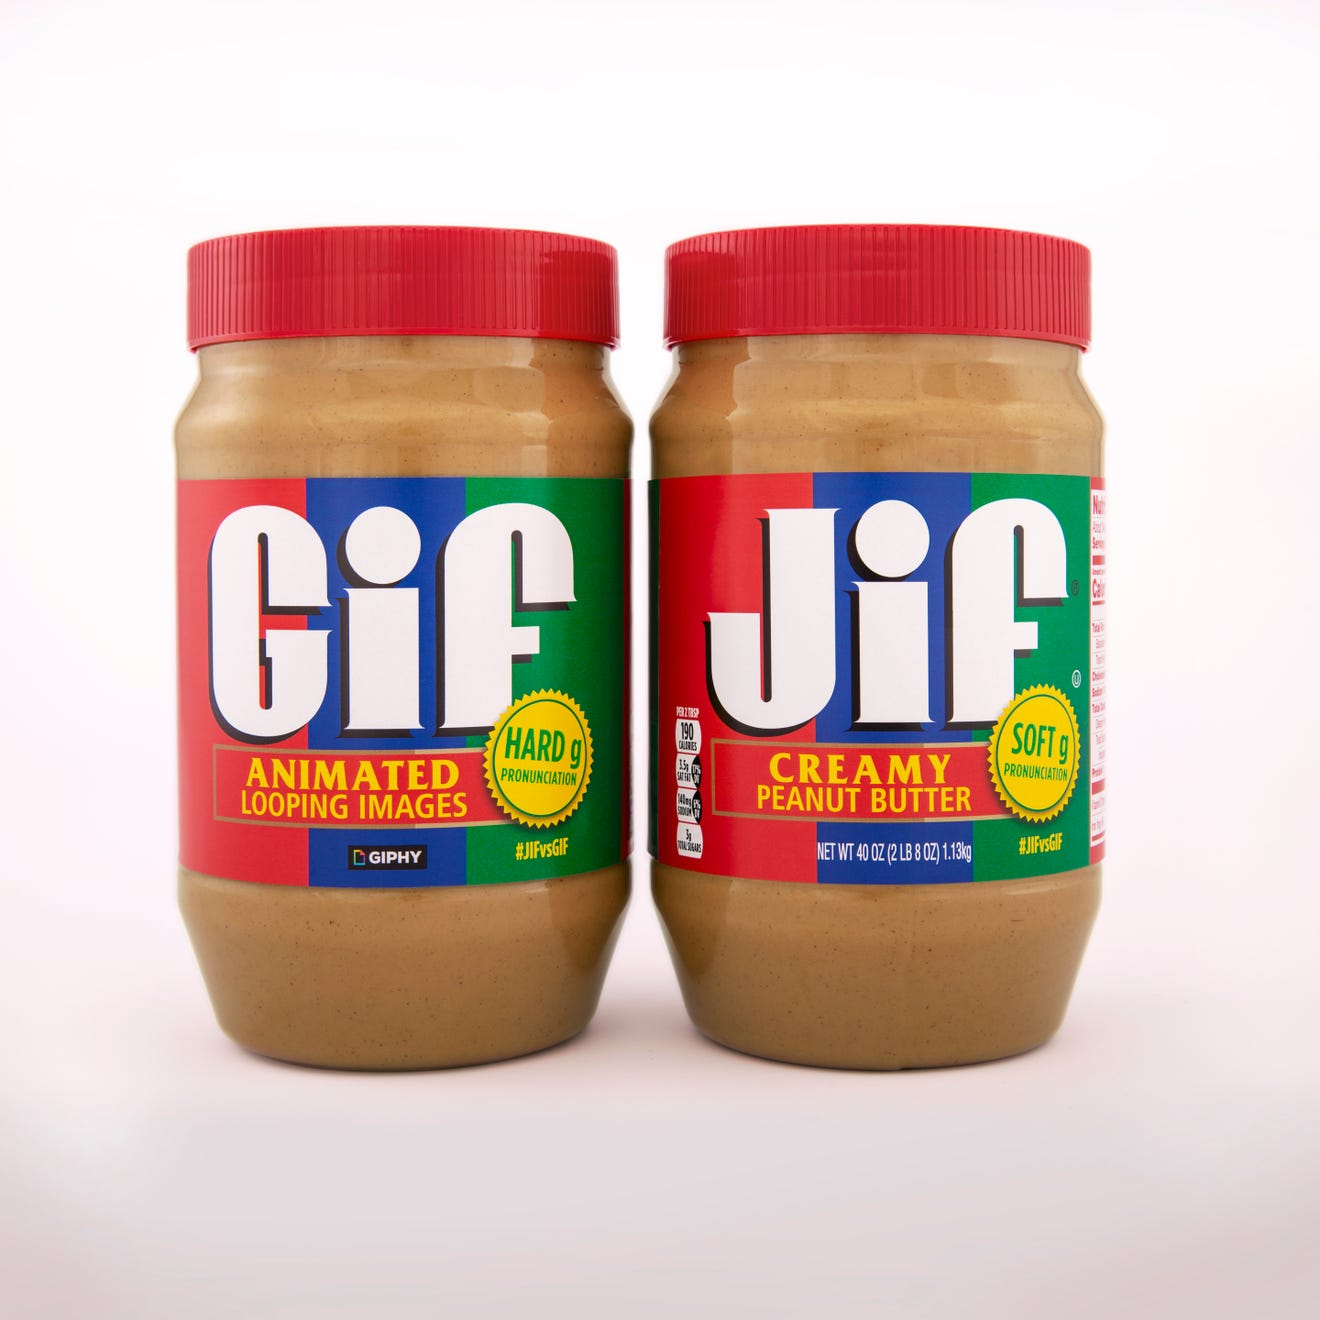 Jif vs Gif-support